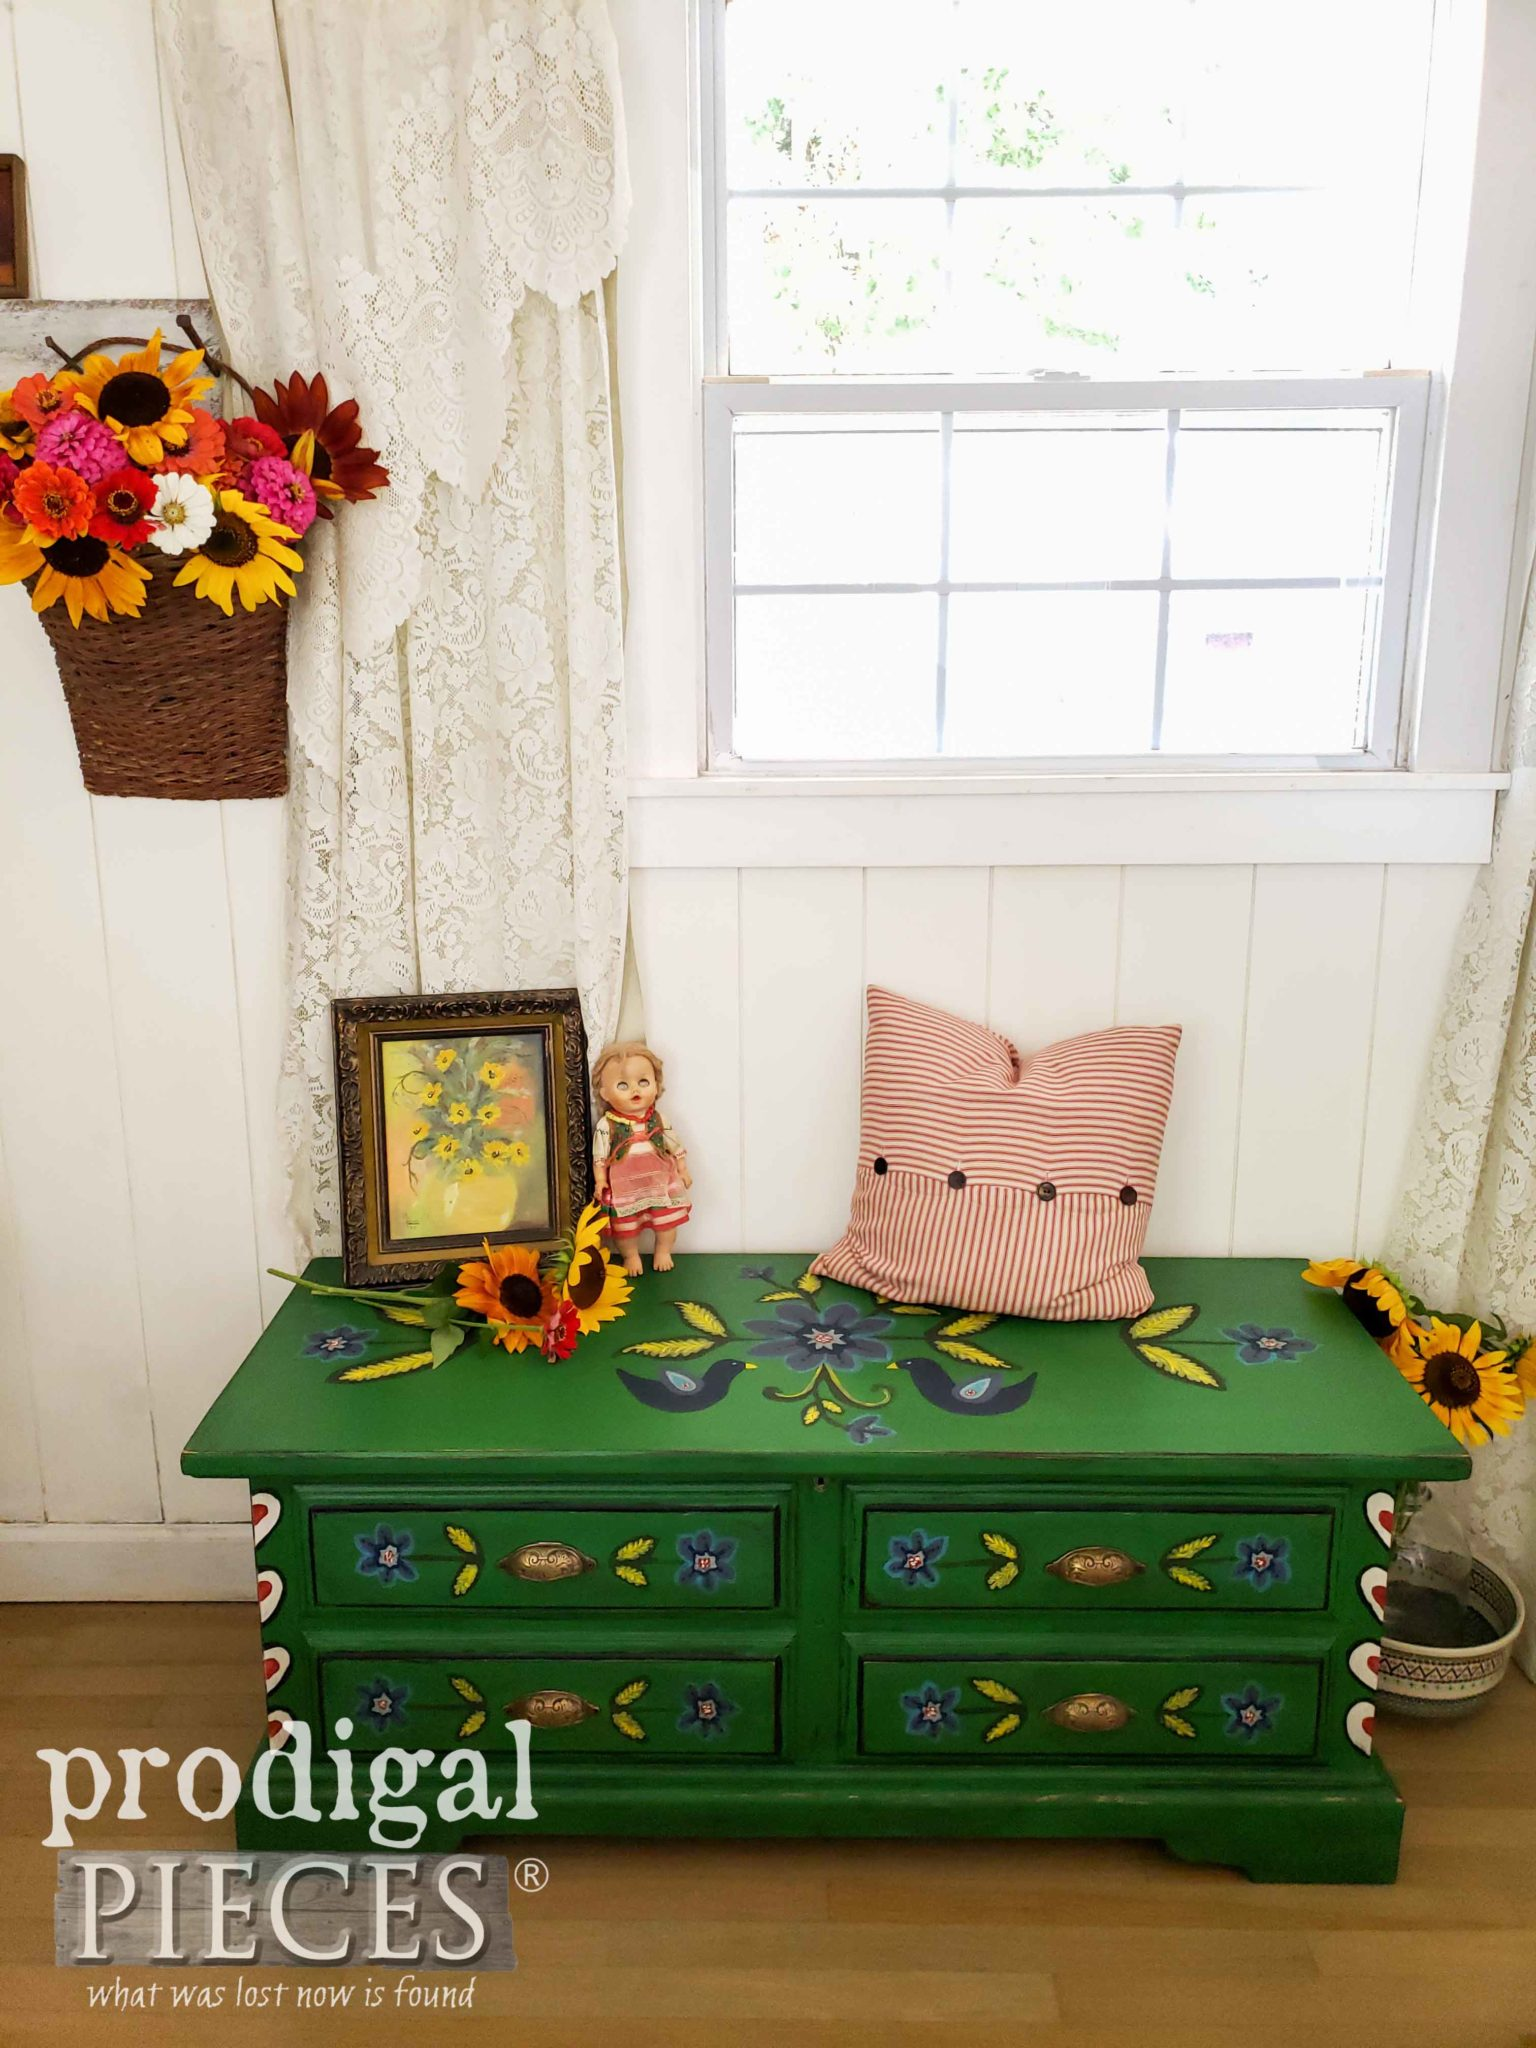 Green Polish Folk Art Blanket Chest with Hand-Painted Design by Larissa of Prodigal Pieces | prodigalpieces.com